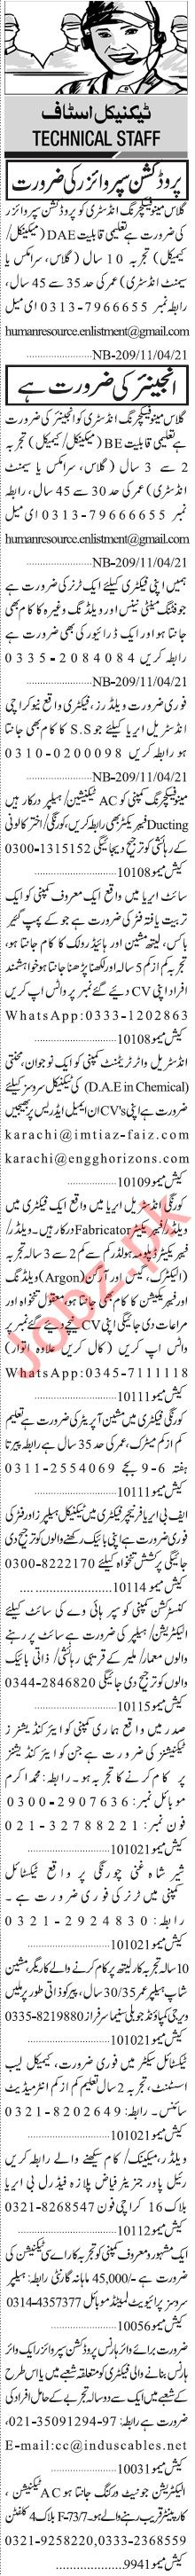 Jang Sunday Classified Ads 11 April 2021 for Technical Staff